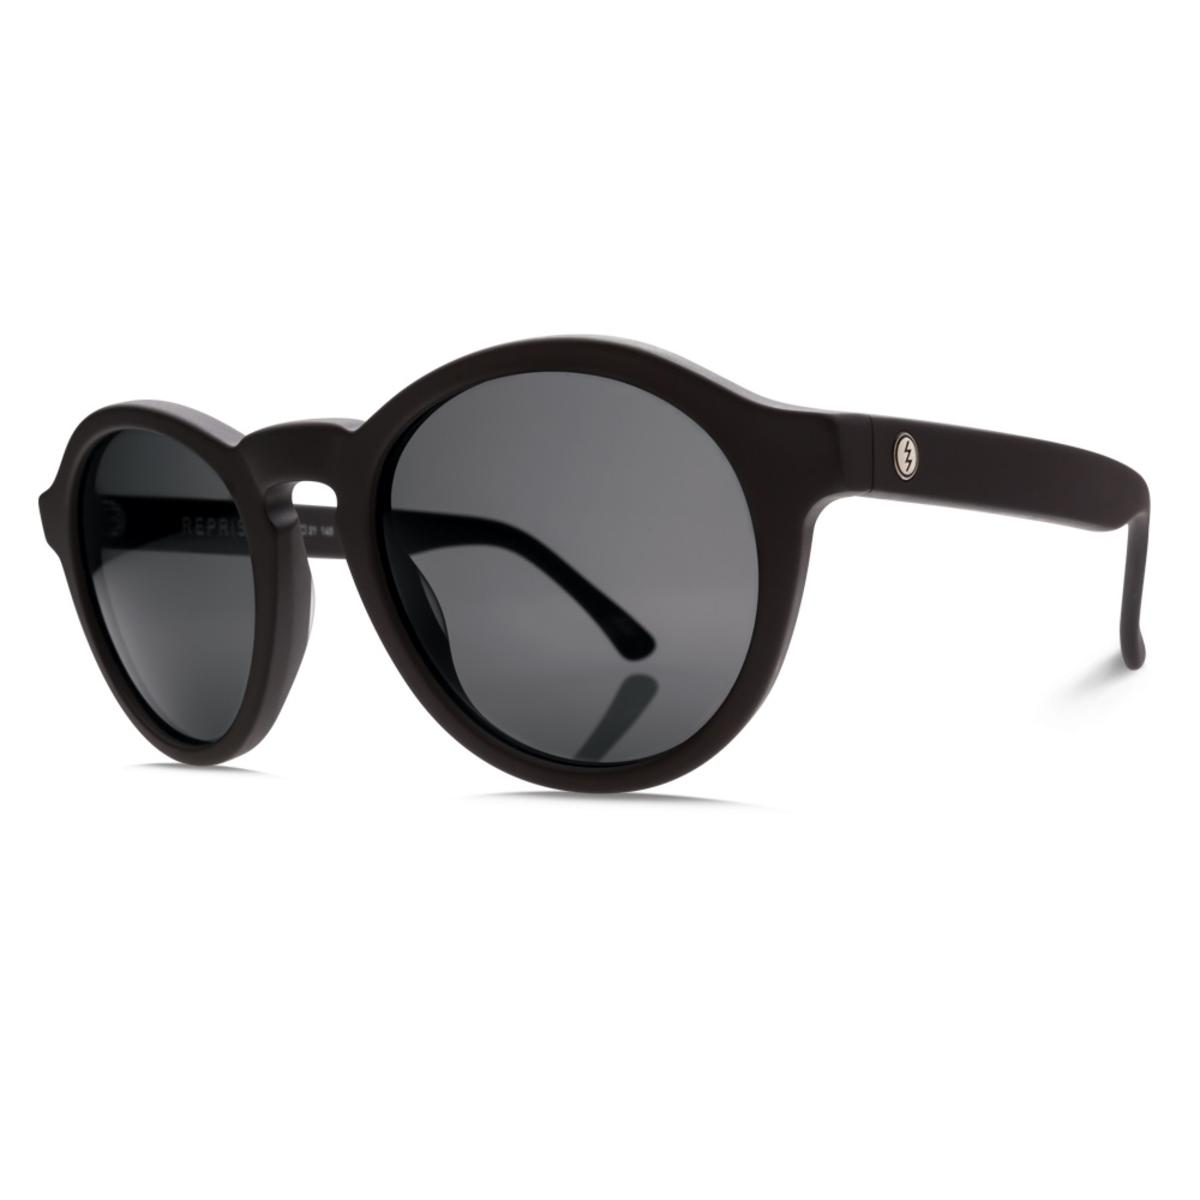 Electric Reprise Women's Sunglasses